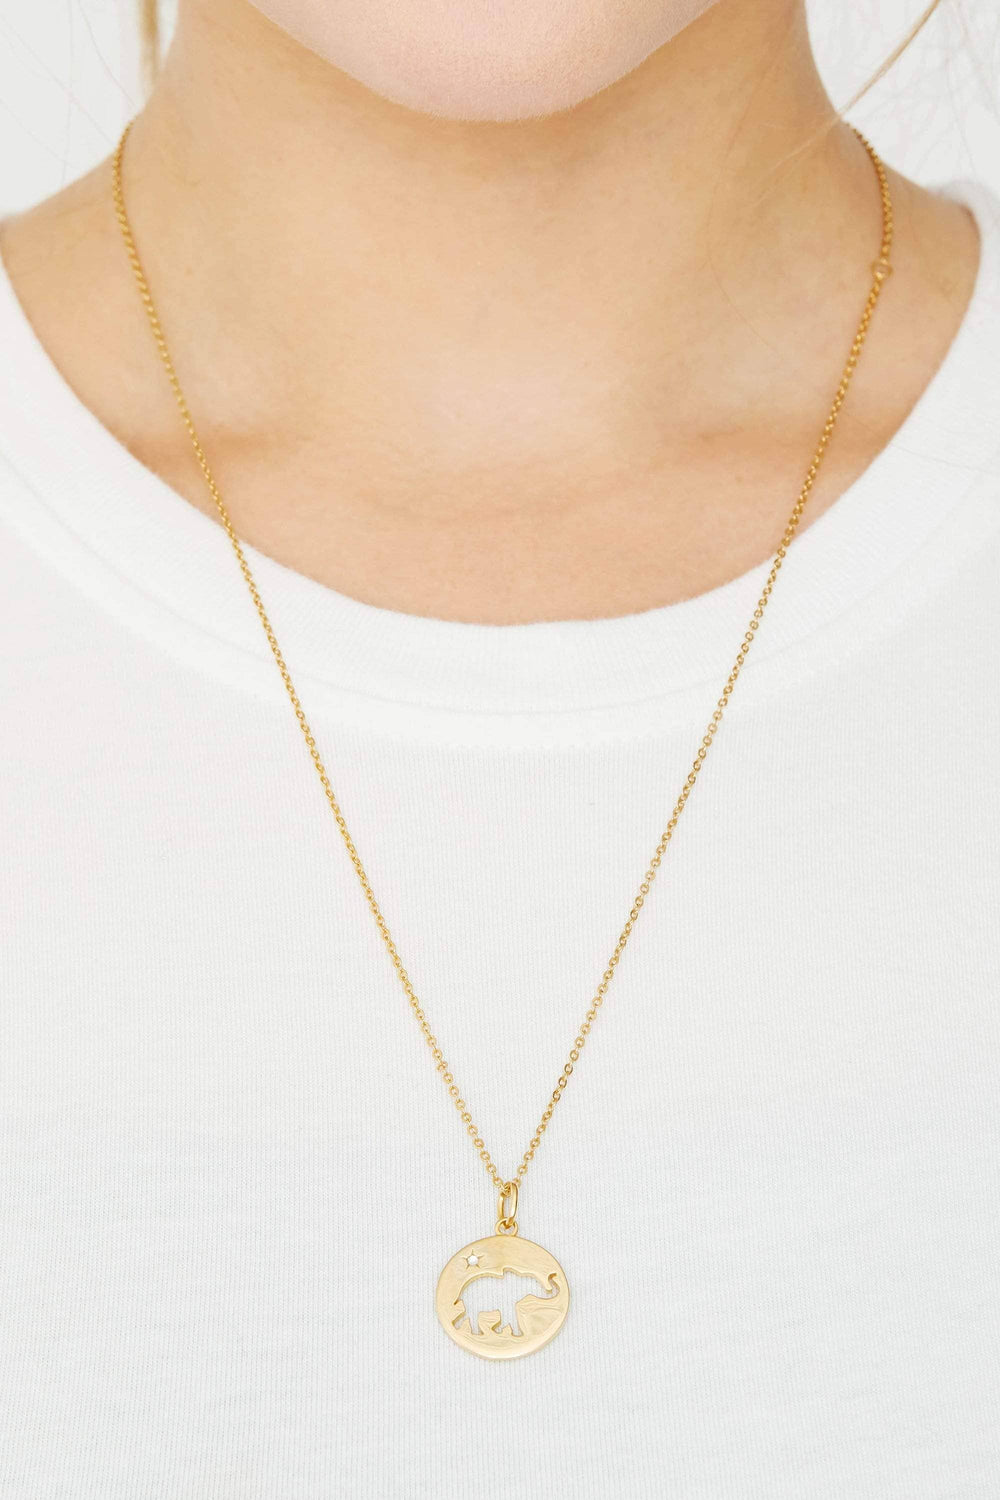 Ivory Ella Jewelry Gold Cut Out Coin Necklace